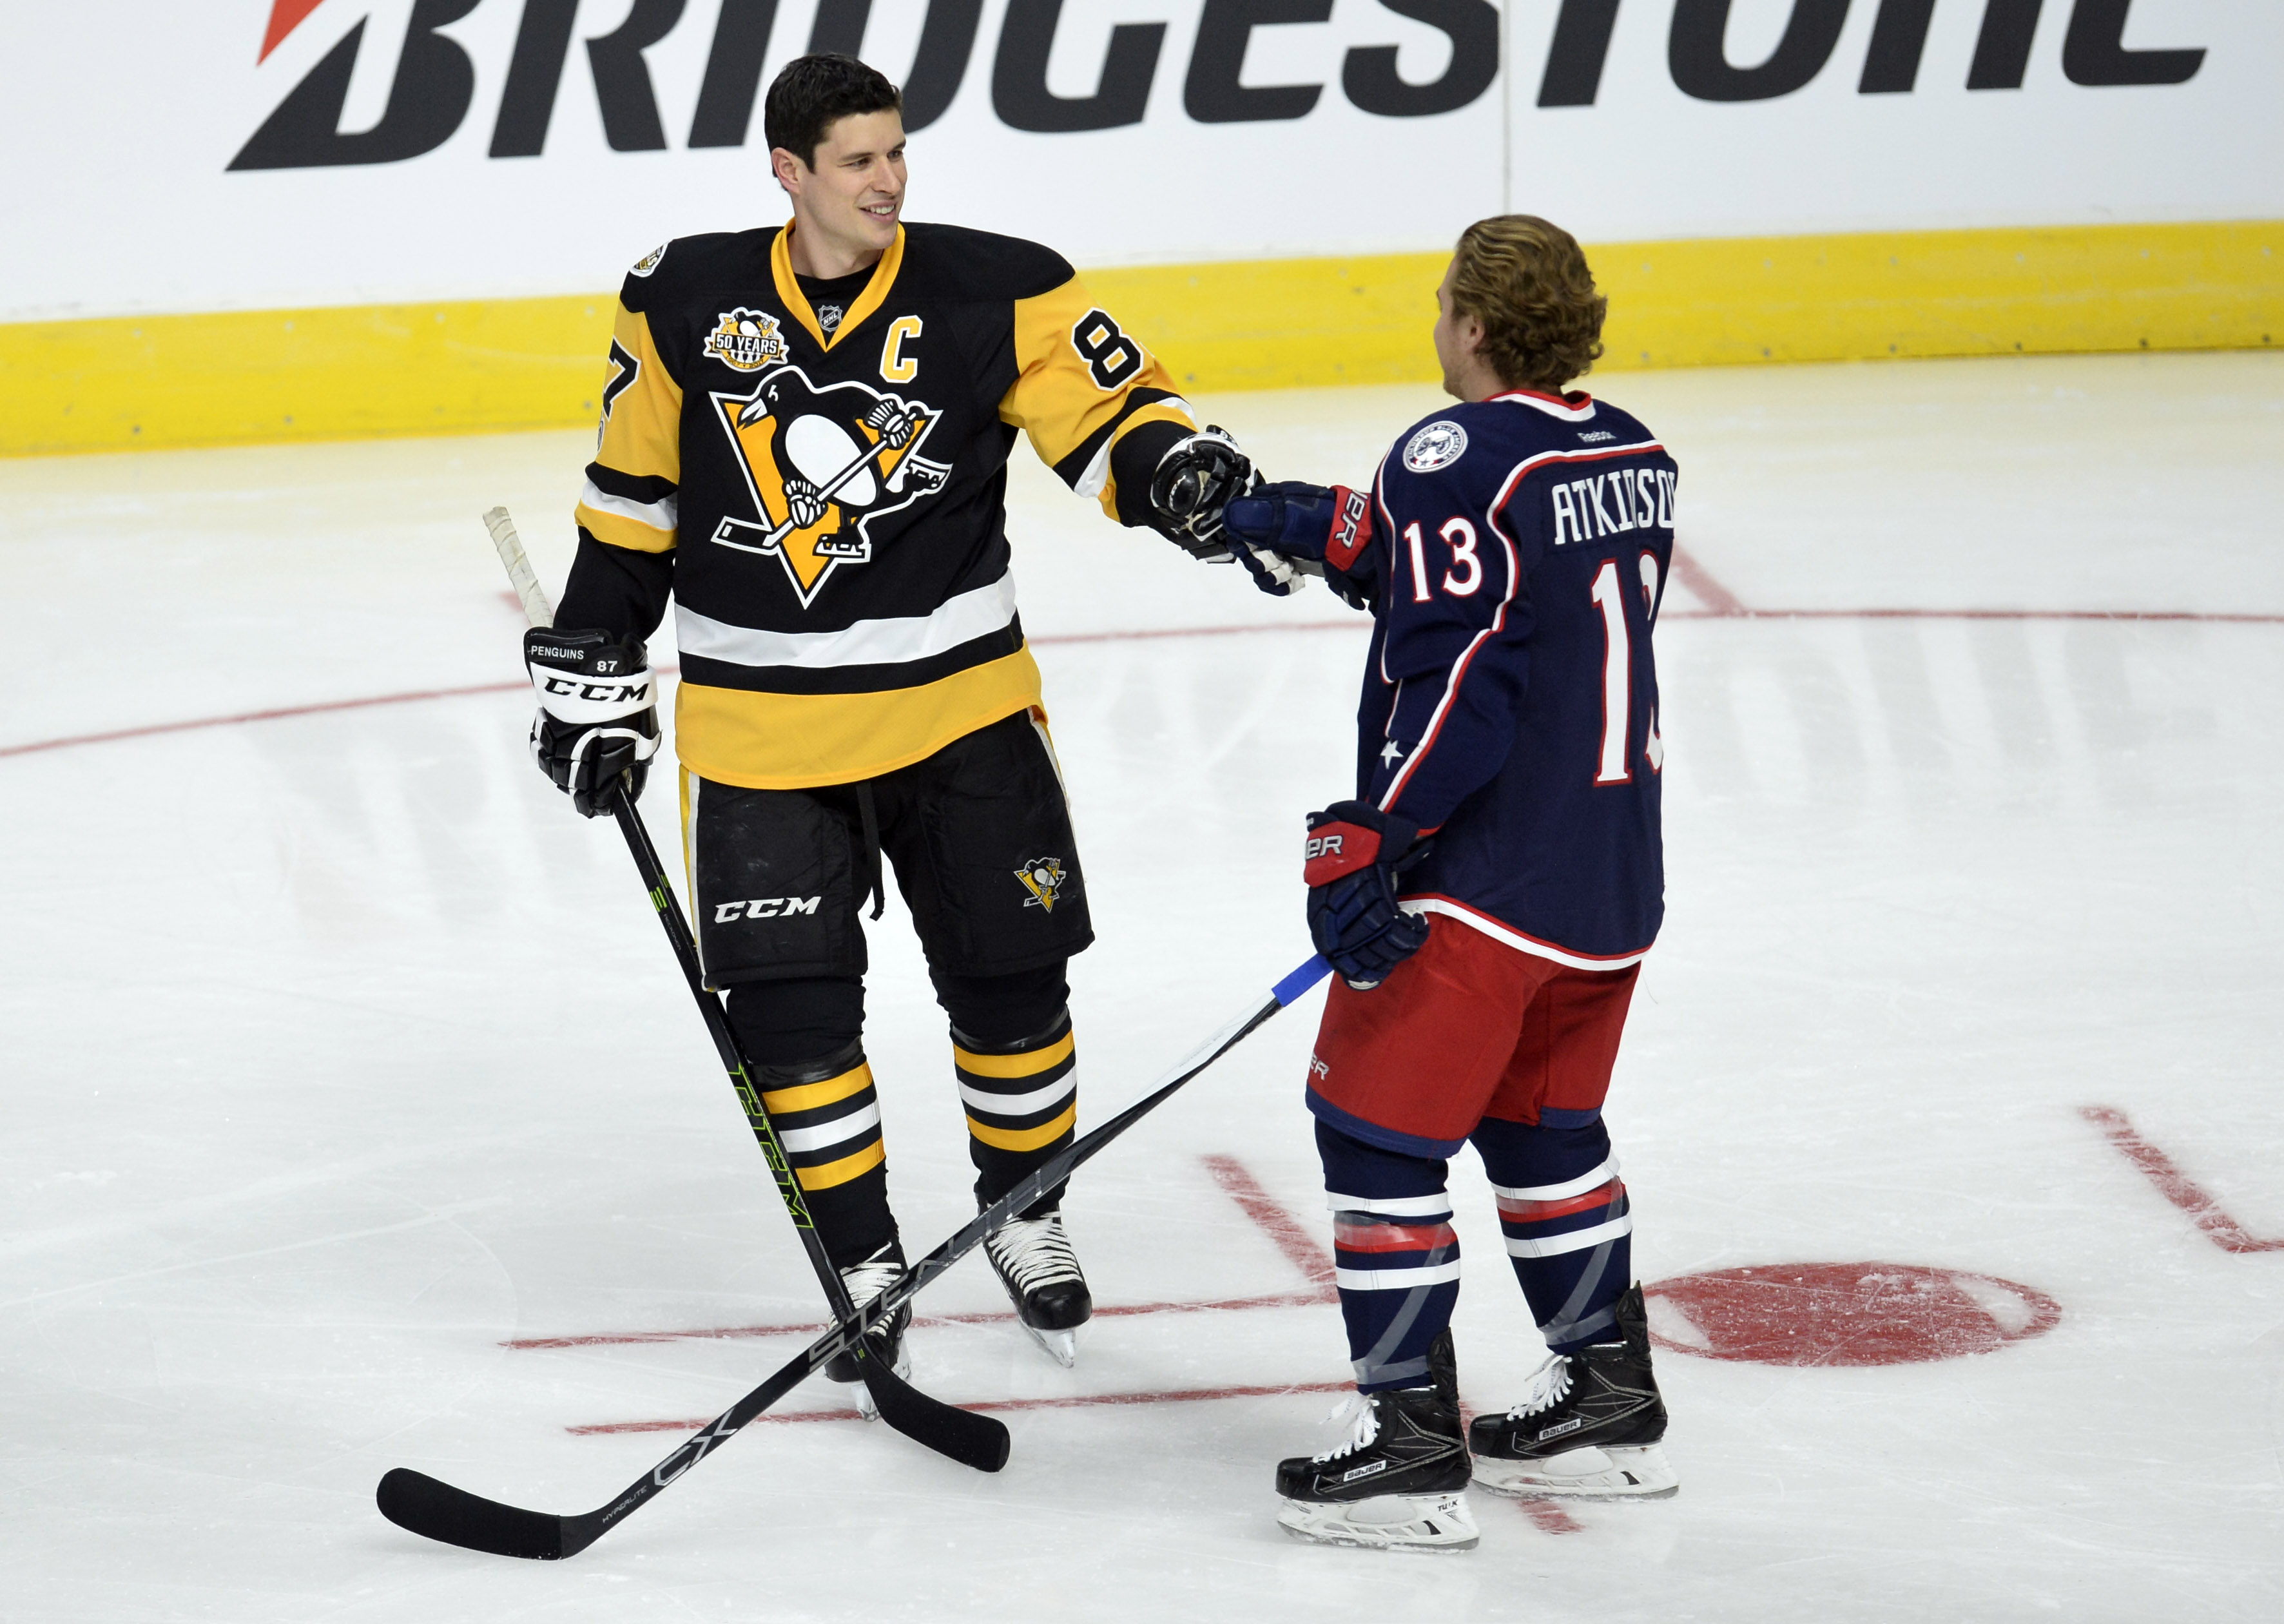 9844722-nhl-nhl-all-star-game-skills-competition